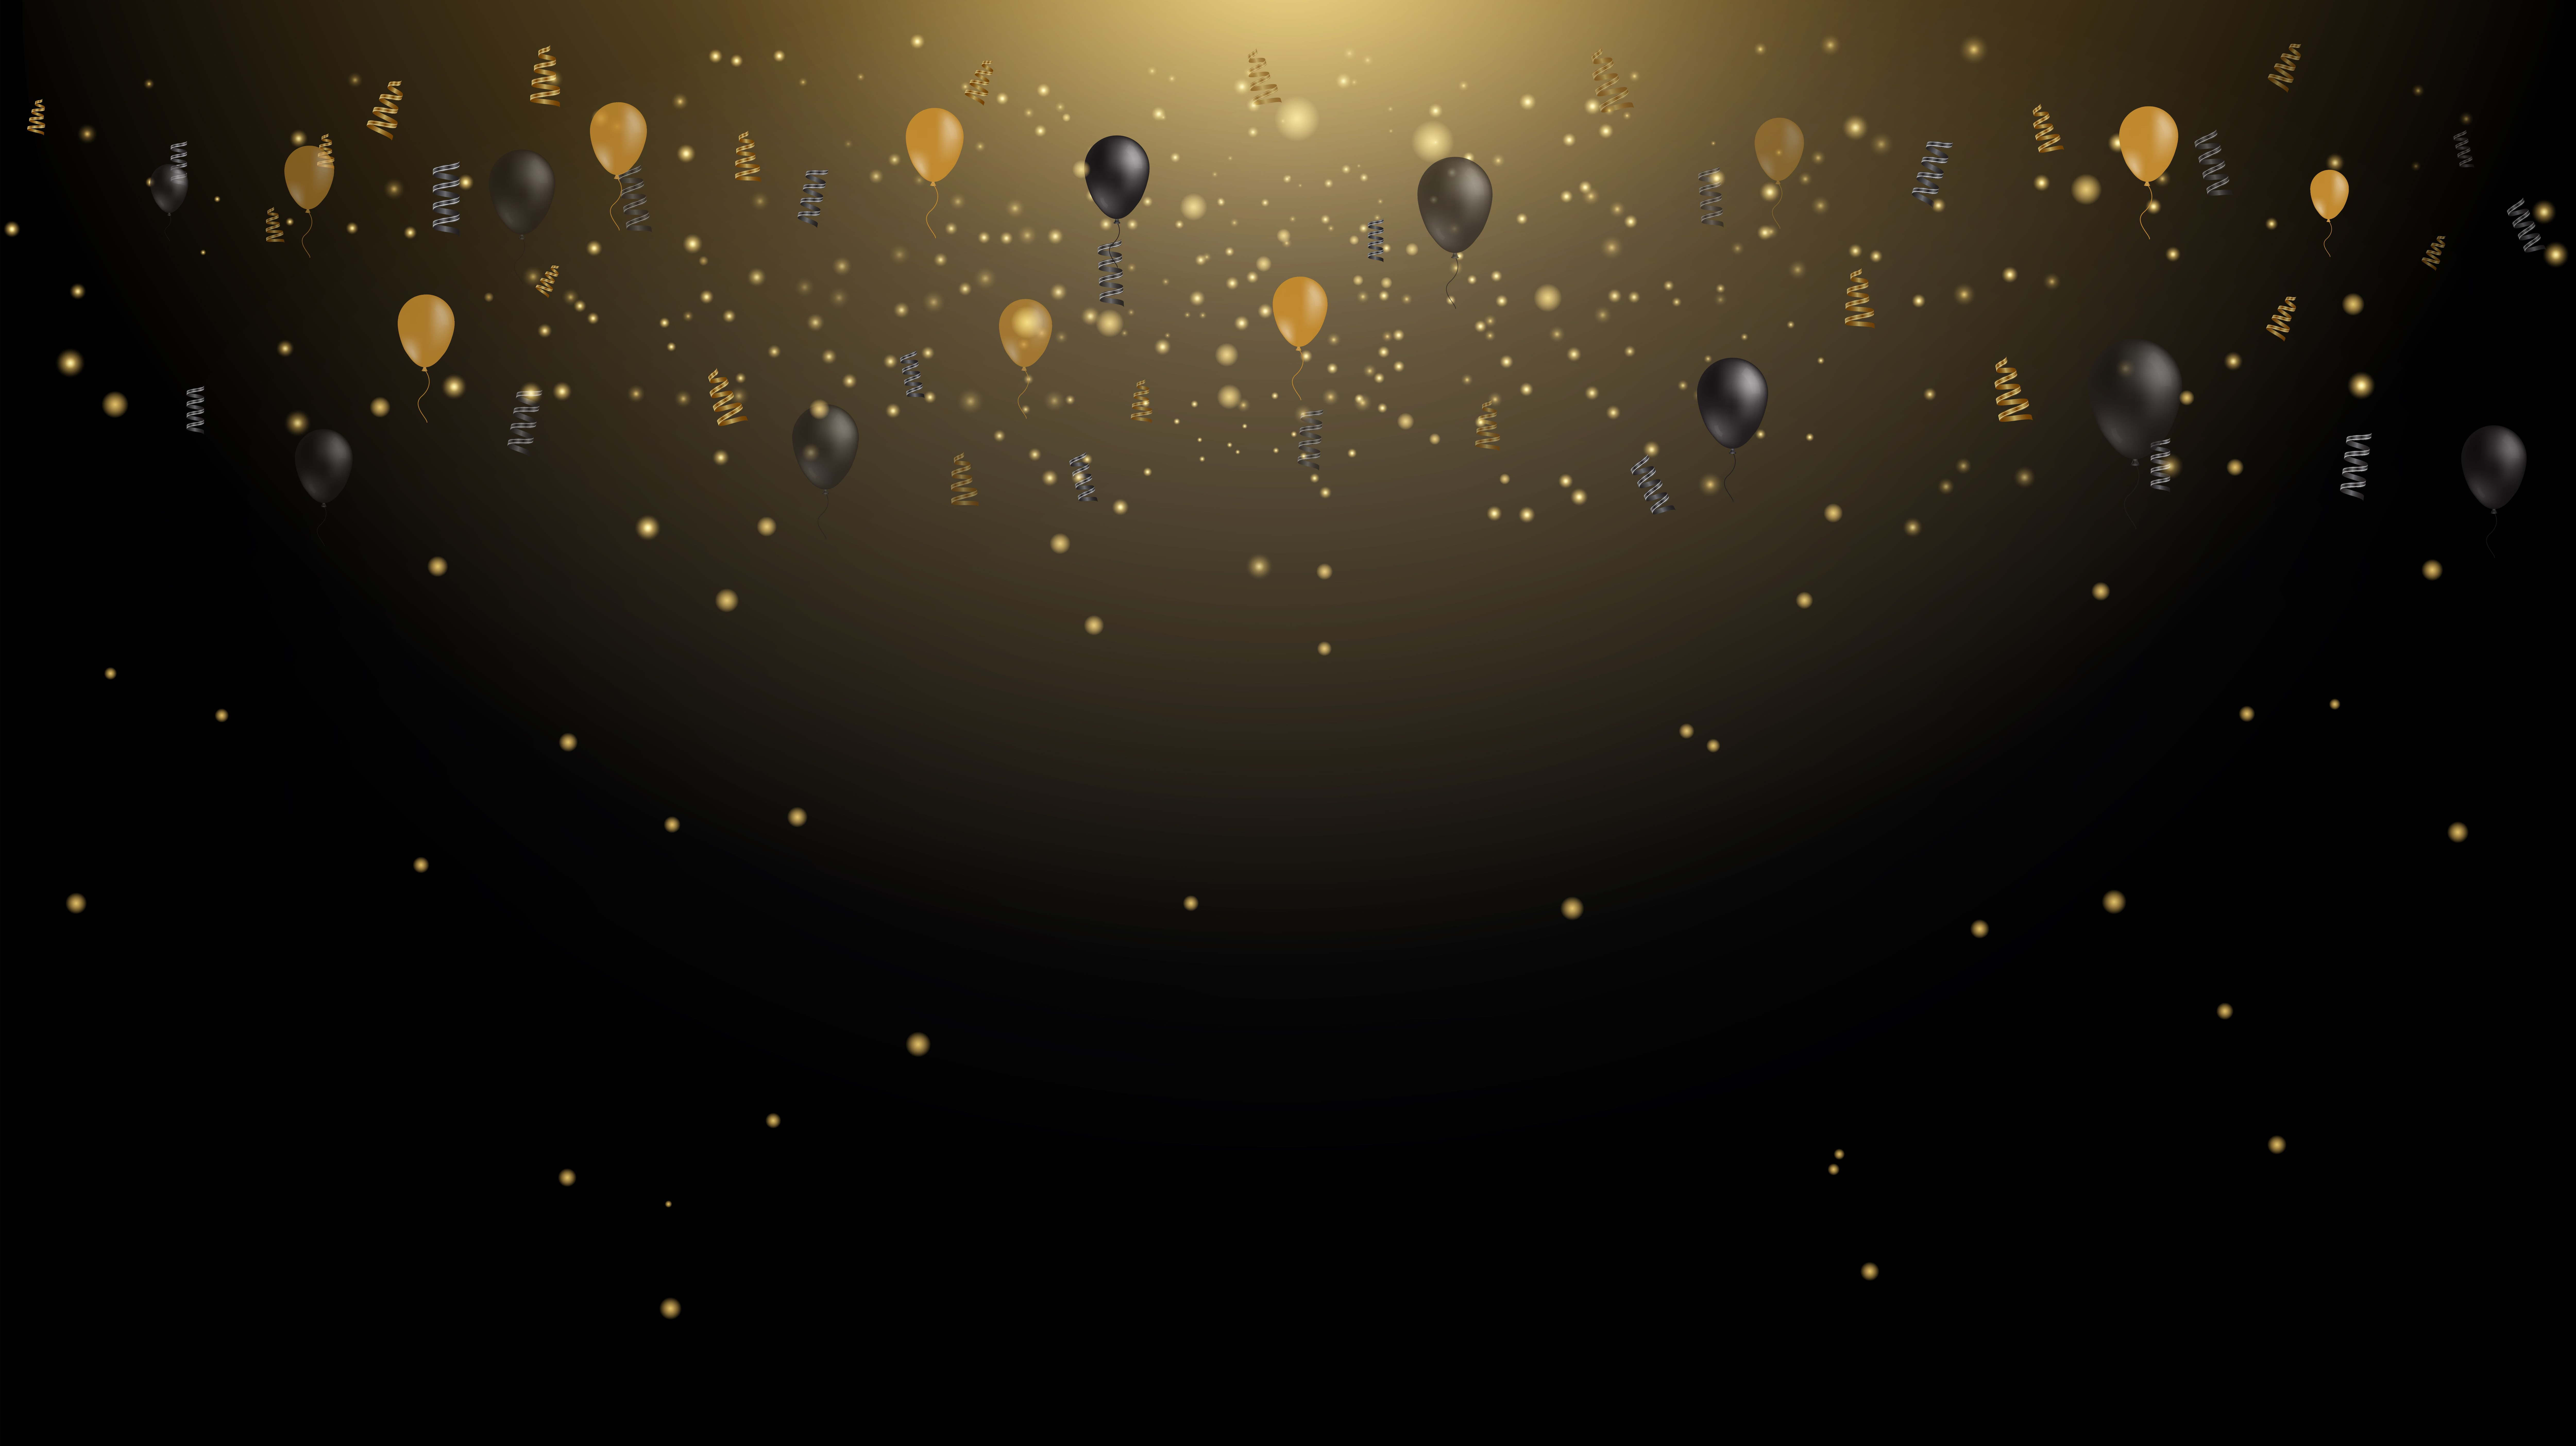 Golden Confetti Light Falling On Luxury Black Background Grainy Abstract Texture Design Element Glamour Glitters Can Be Background Design Texture Design Luxury